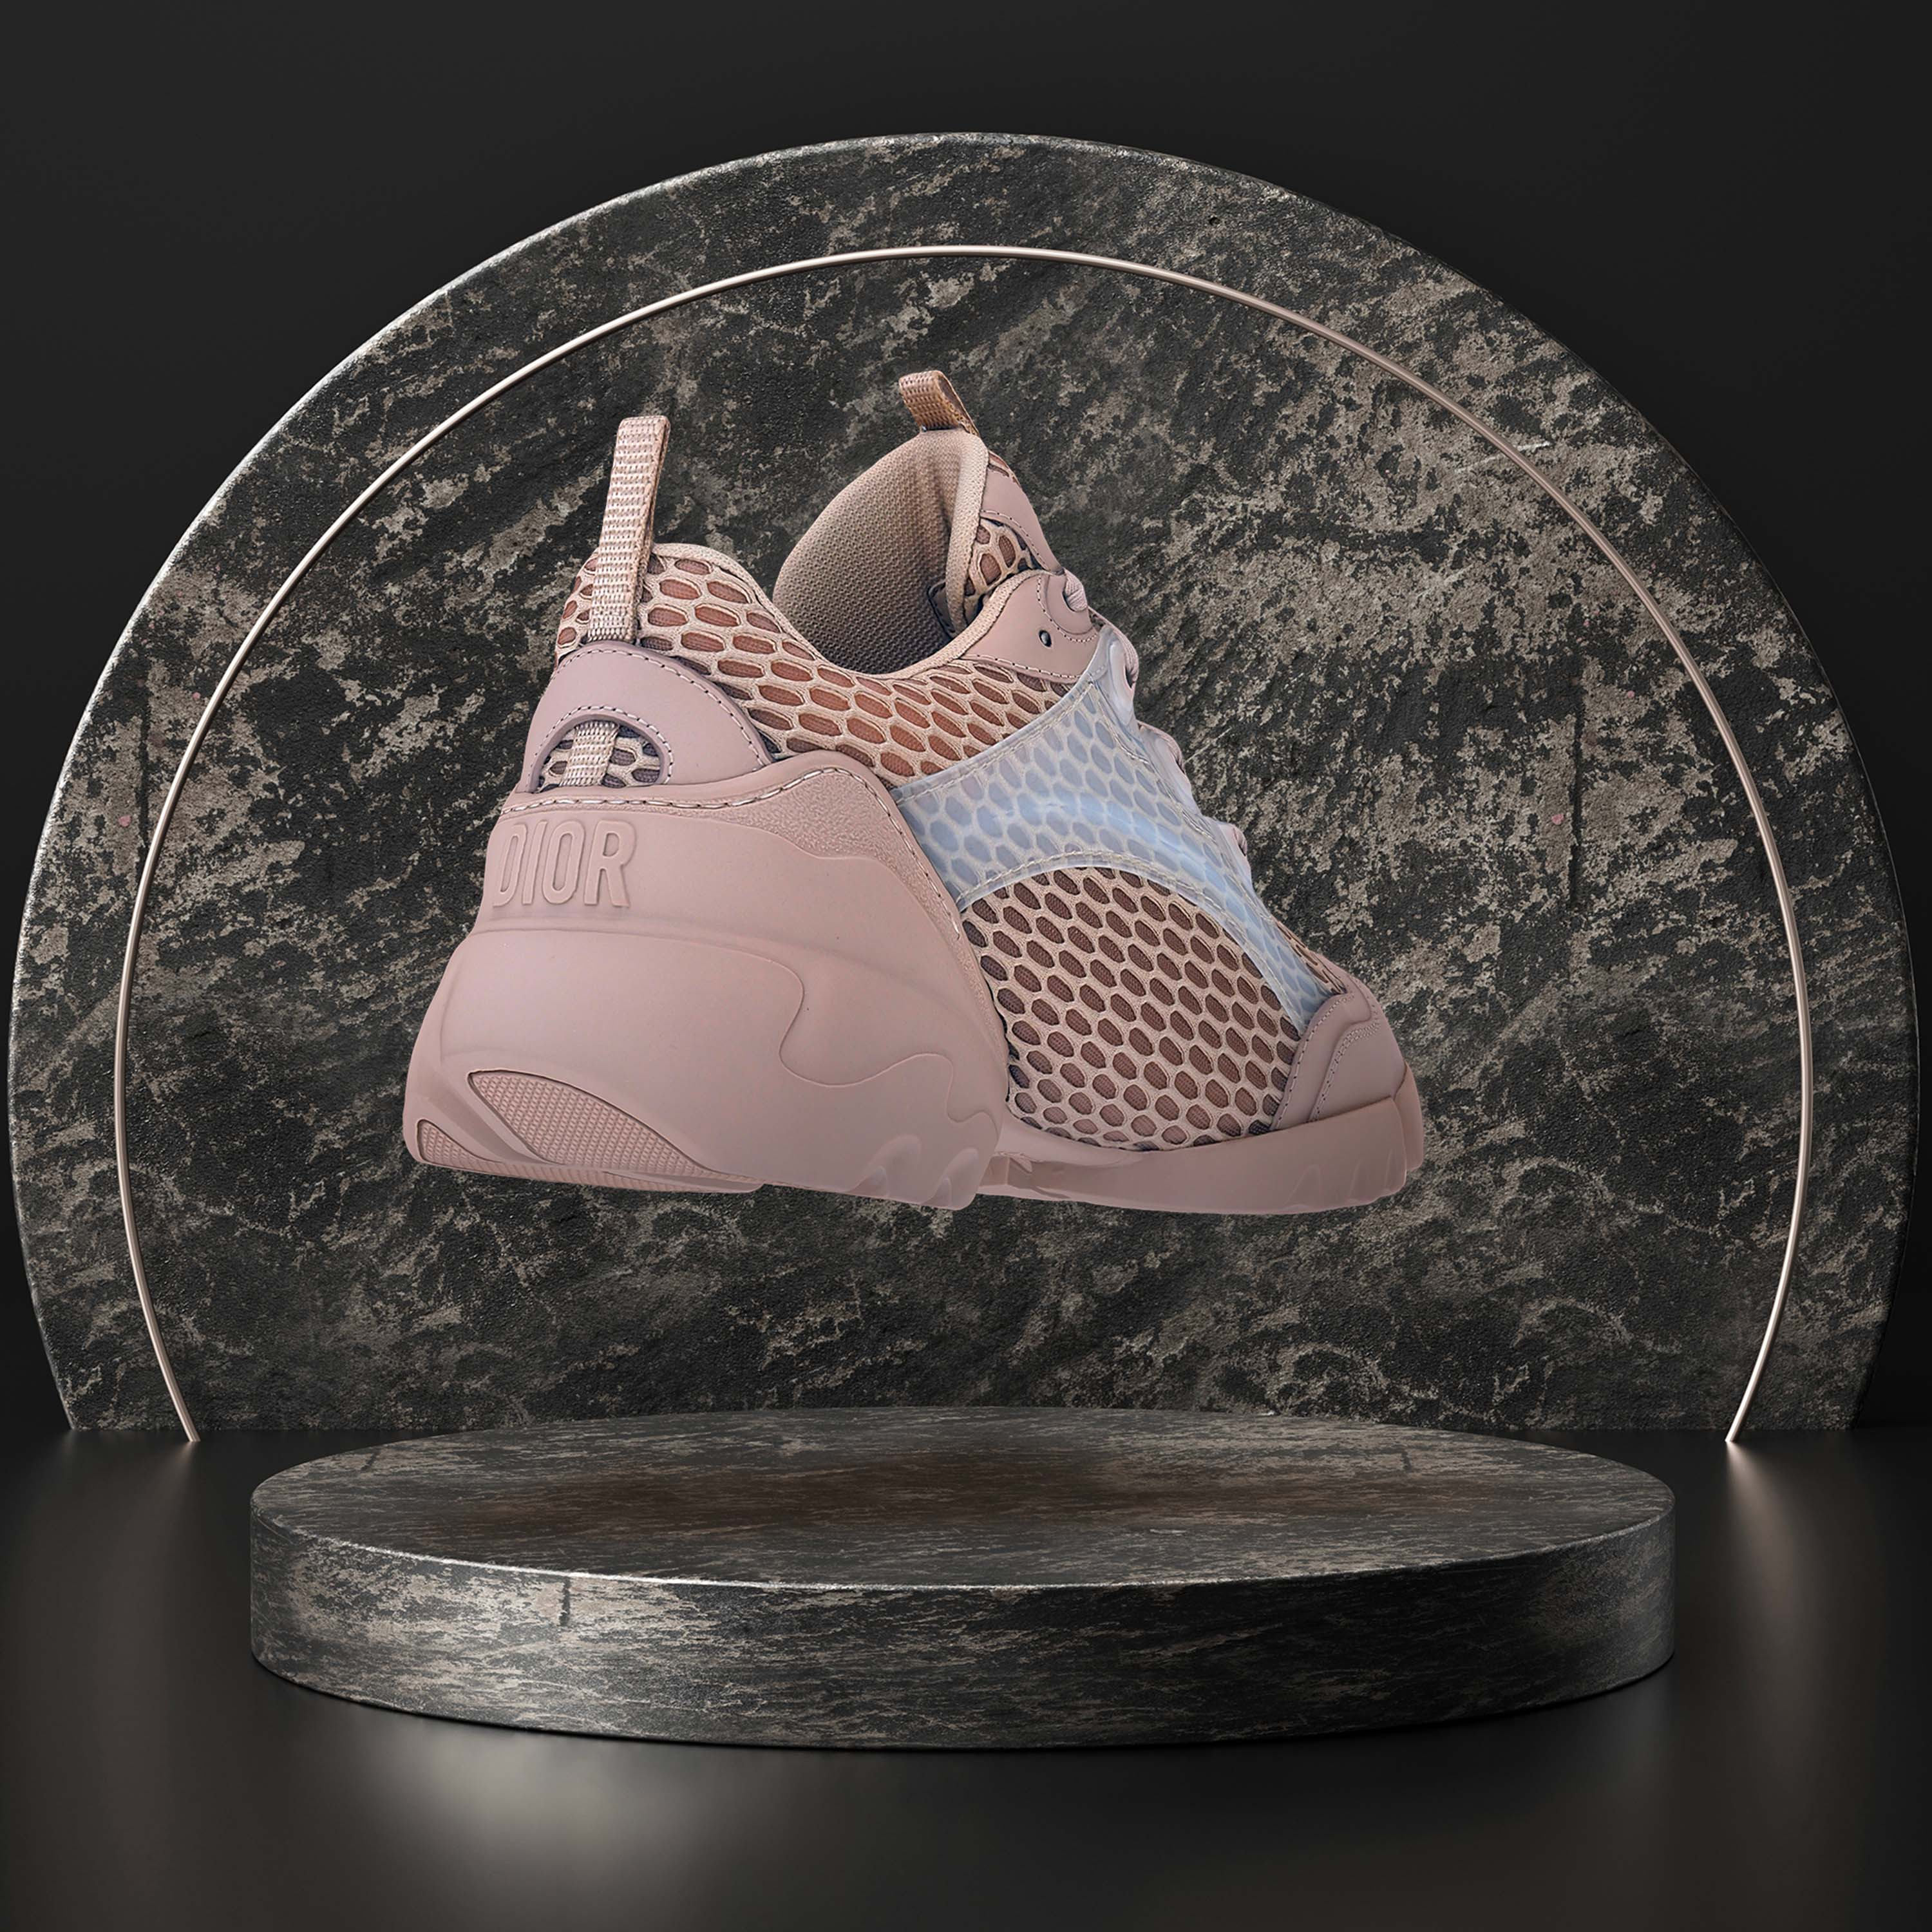 a ray tracing 3D render by Naker sneaker